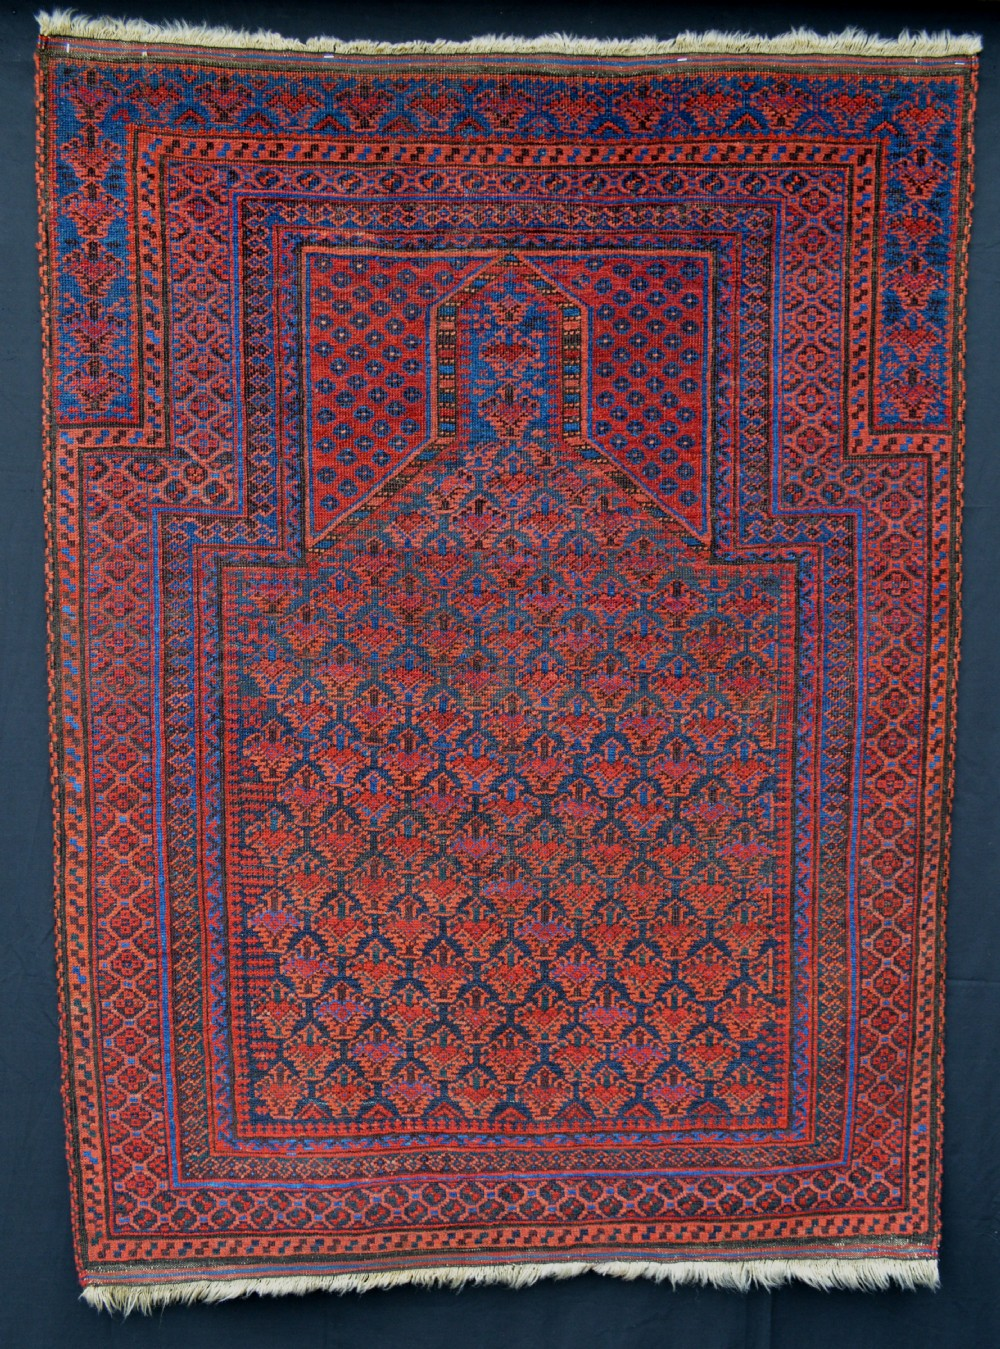 antique prayer rug timuri tribes dokhtareqazi group western afghanistan